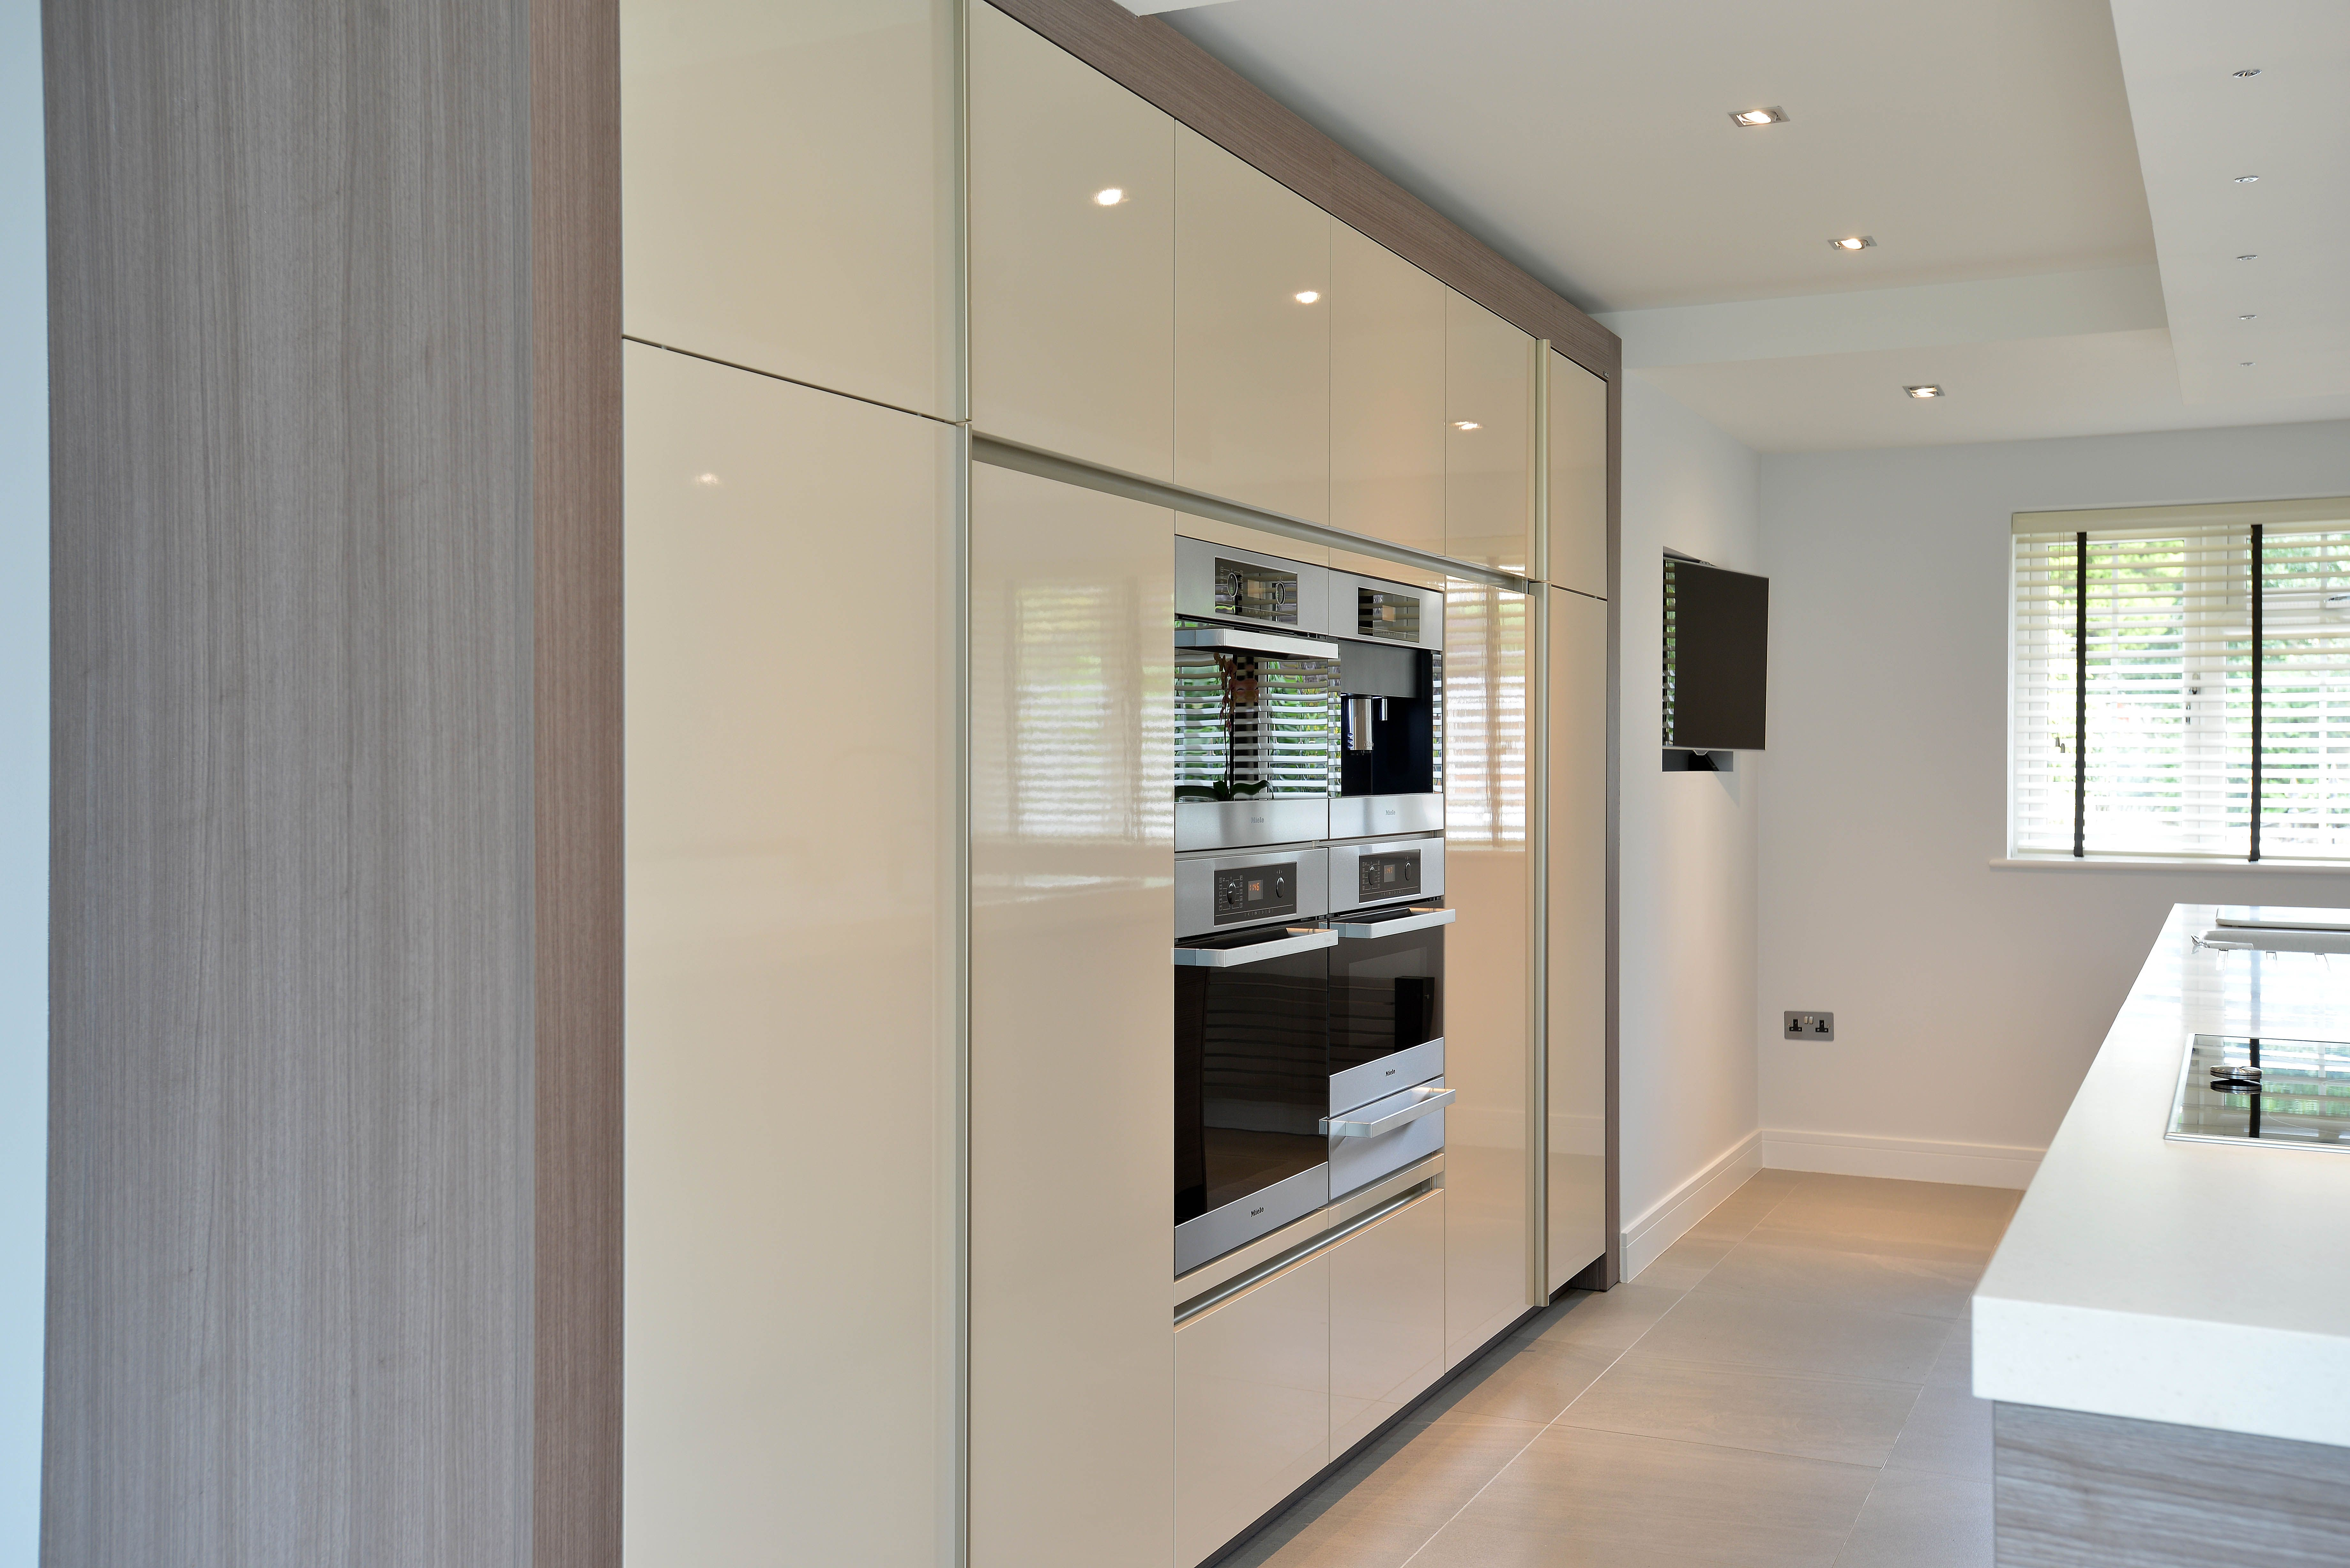 House Of Appliances Stunning Bank Of Units Incorporating Neff Appliances Cuisine